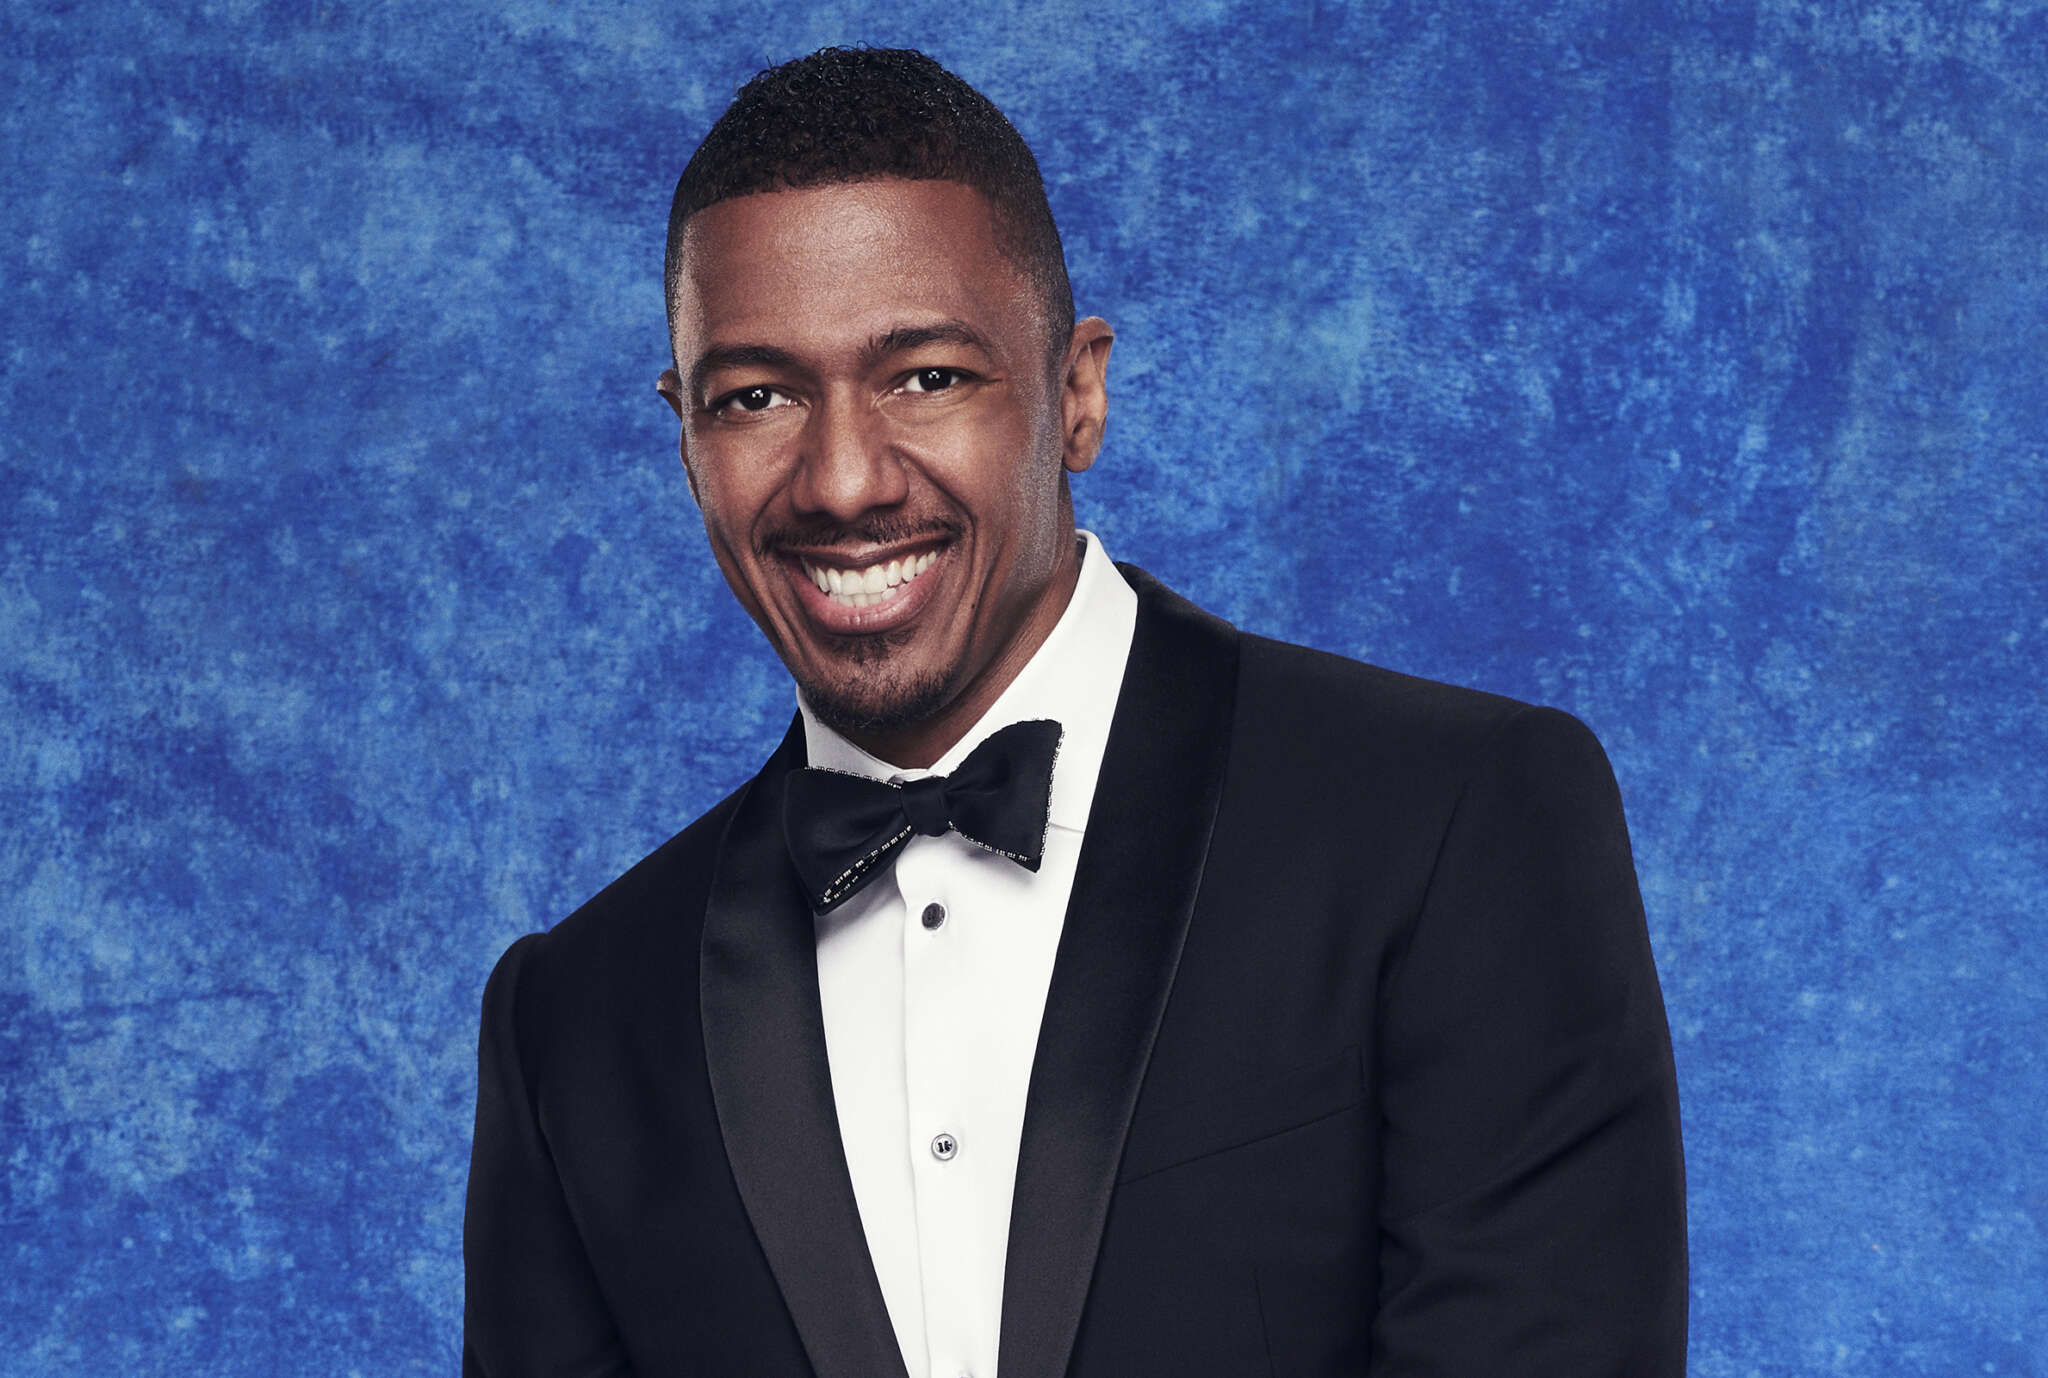 Nick Cannon Is Tested Positive For Covid-19 – Here's Who's Filling In For Him As Host Of 'The Masked Singer'